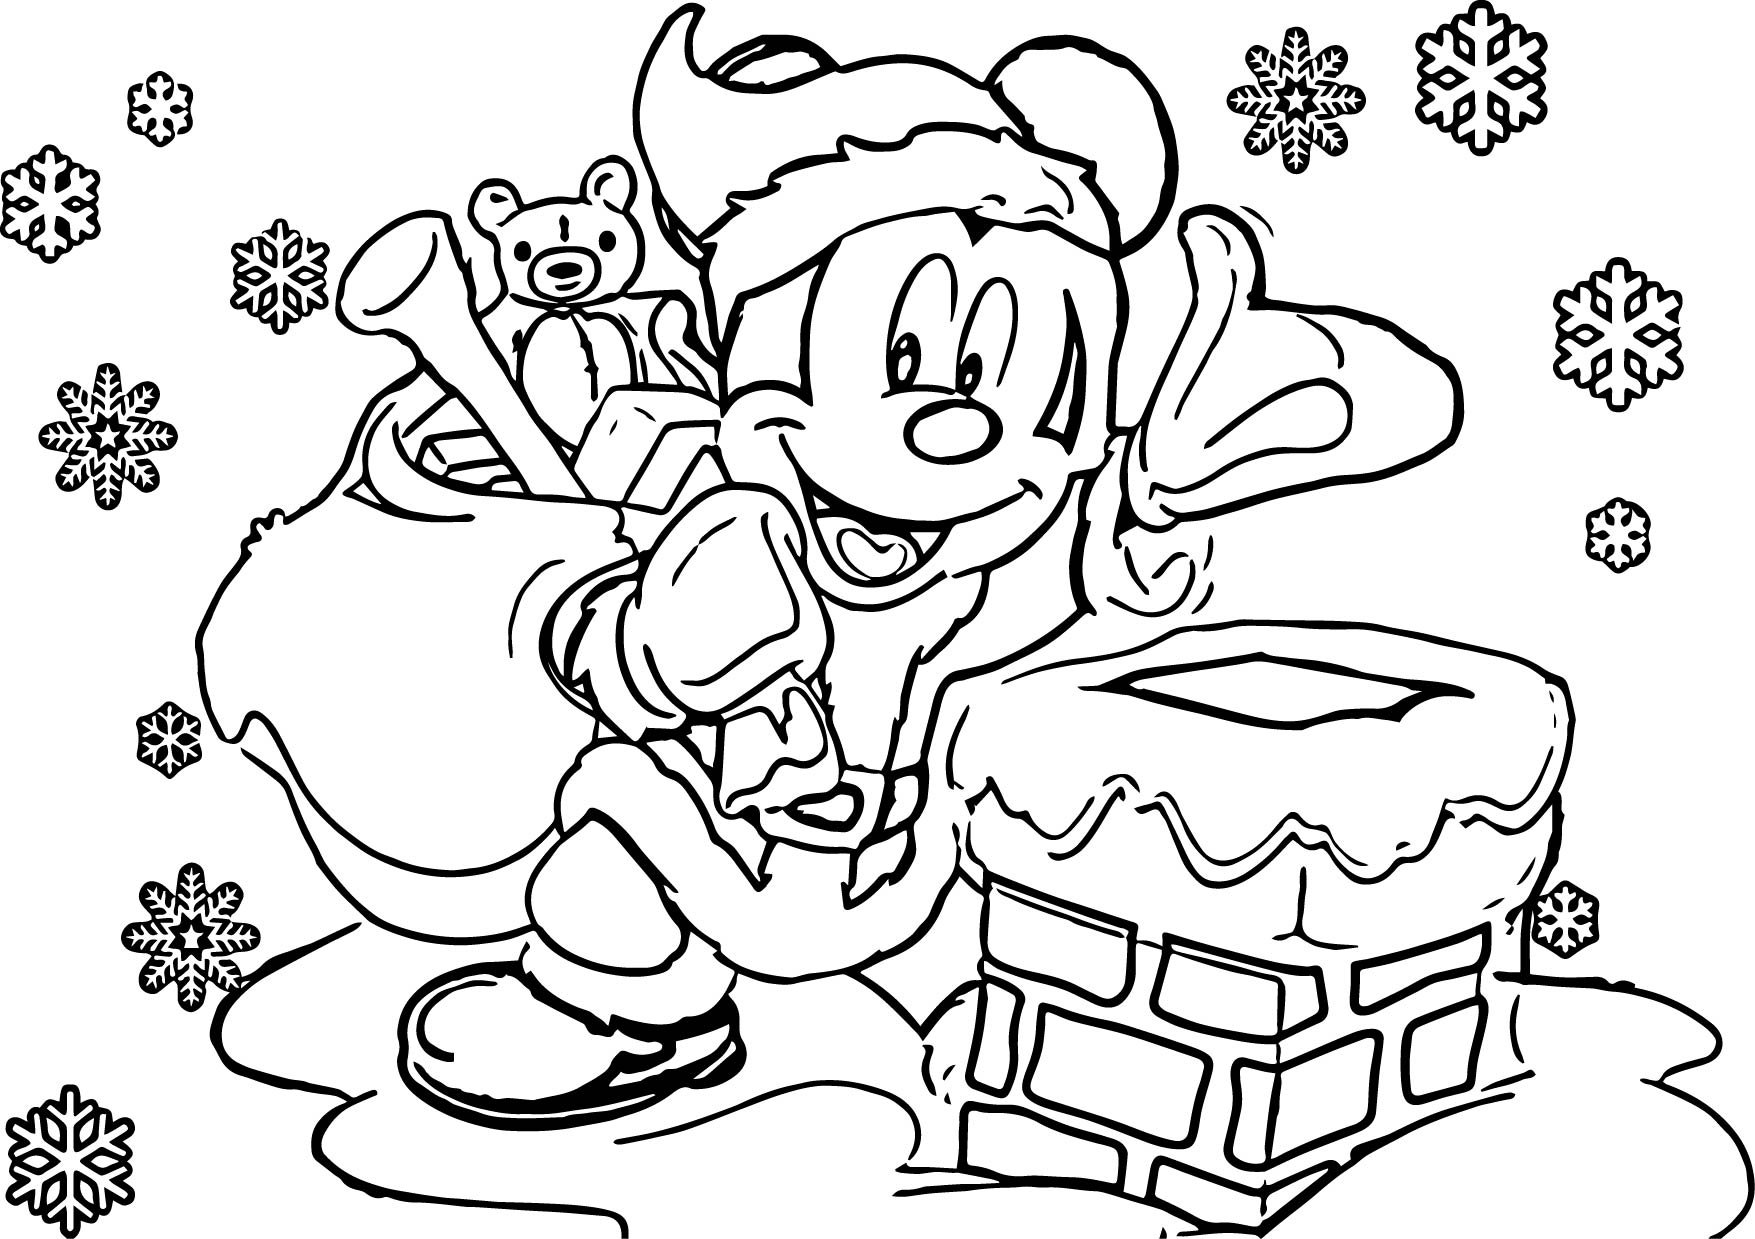 23 Disney Coloring Book Pages Printable | FREE COLORING PAGES - Part 2